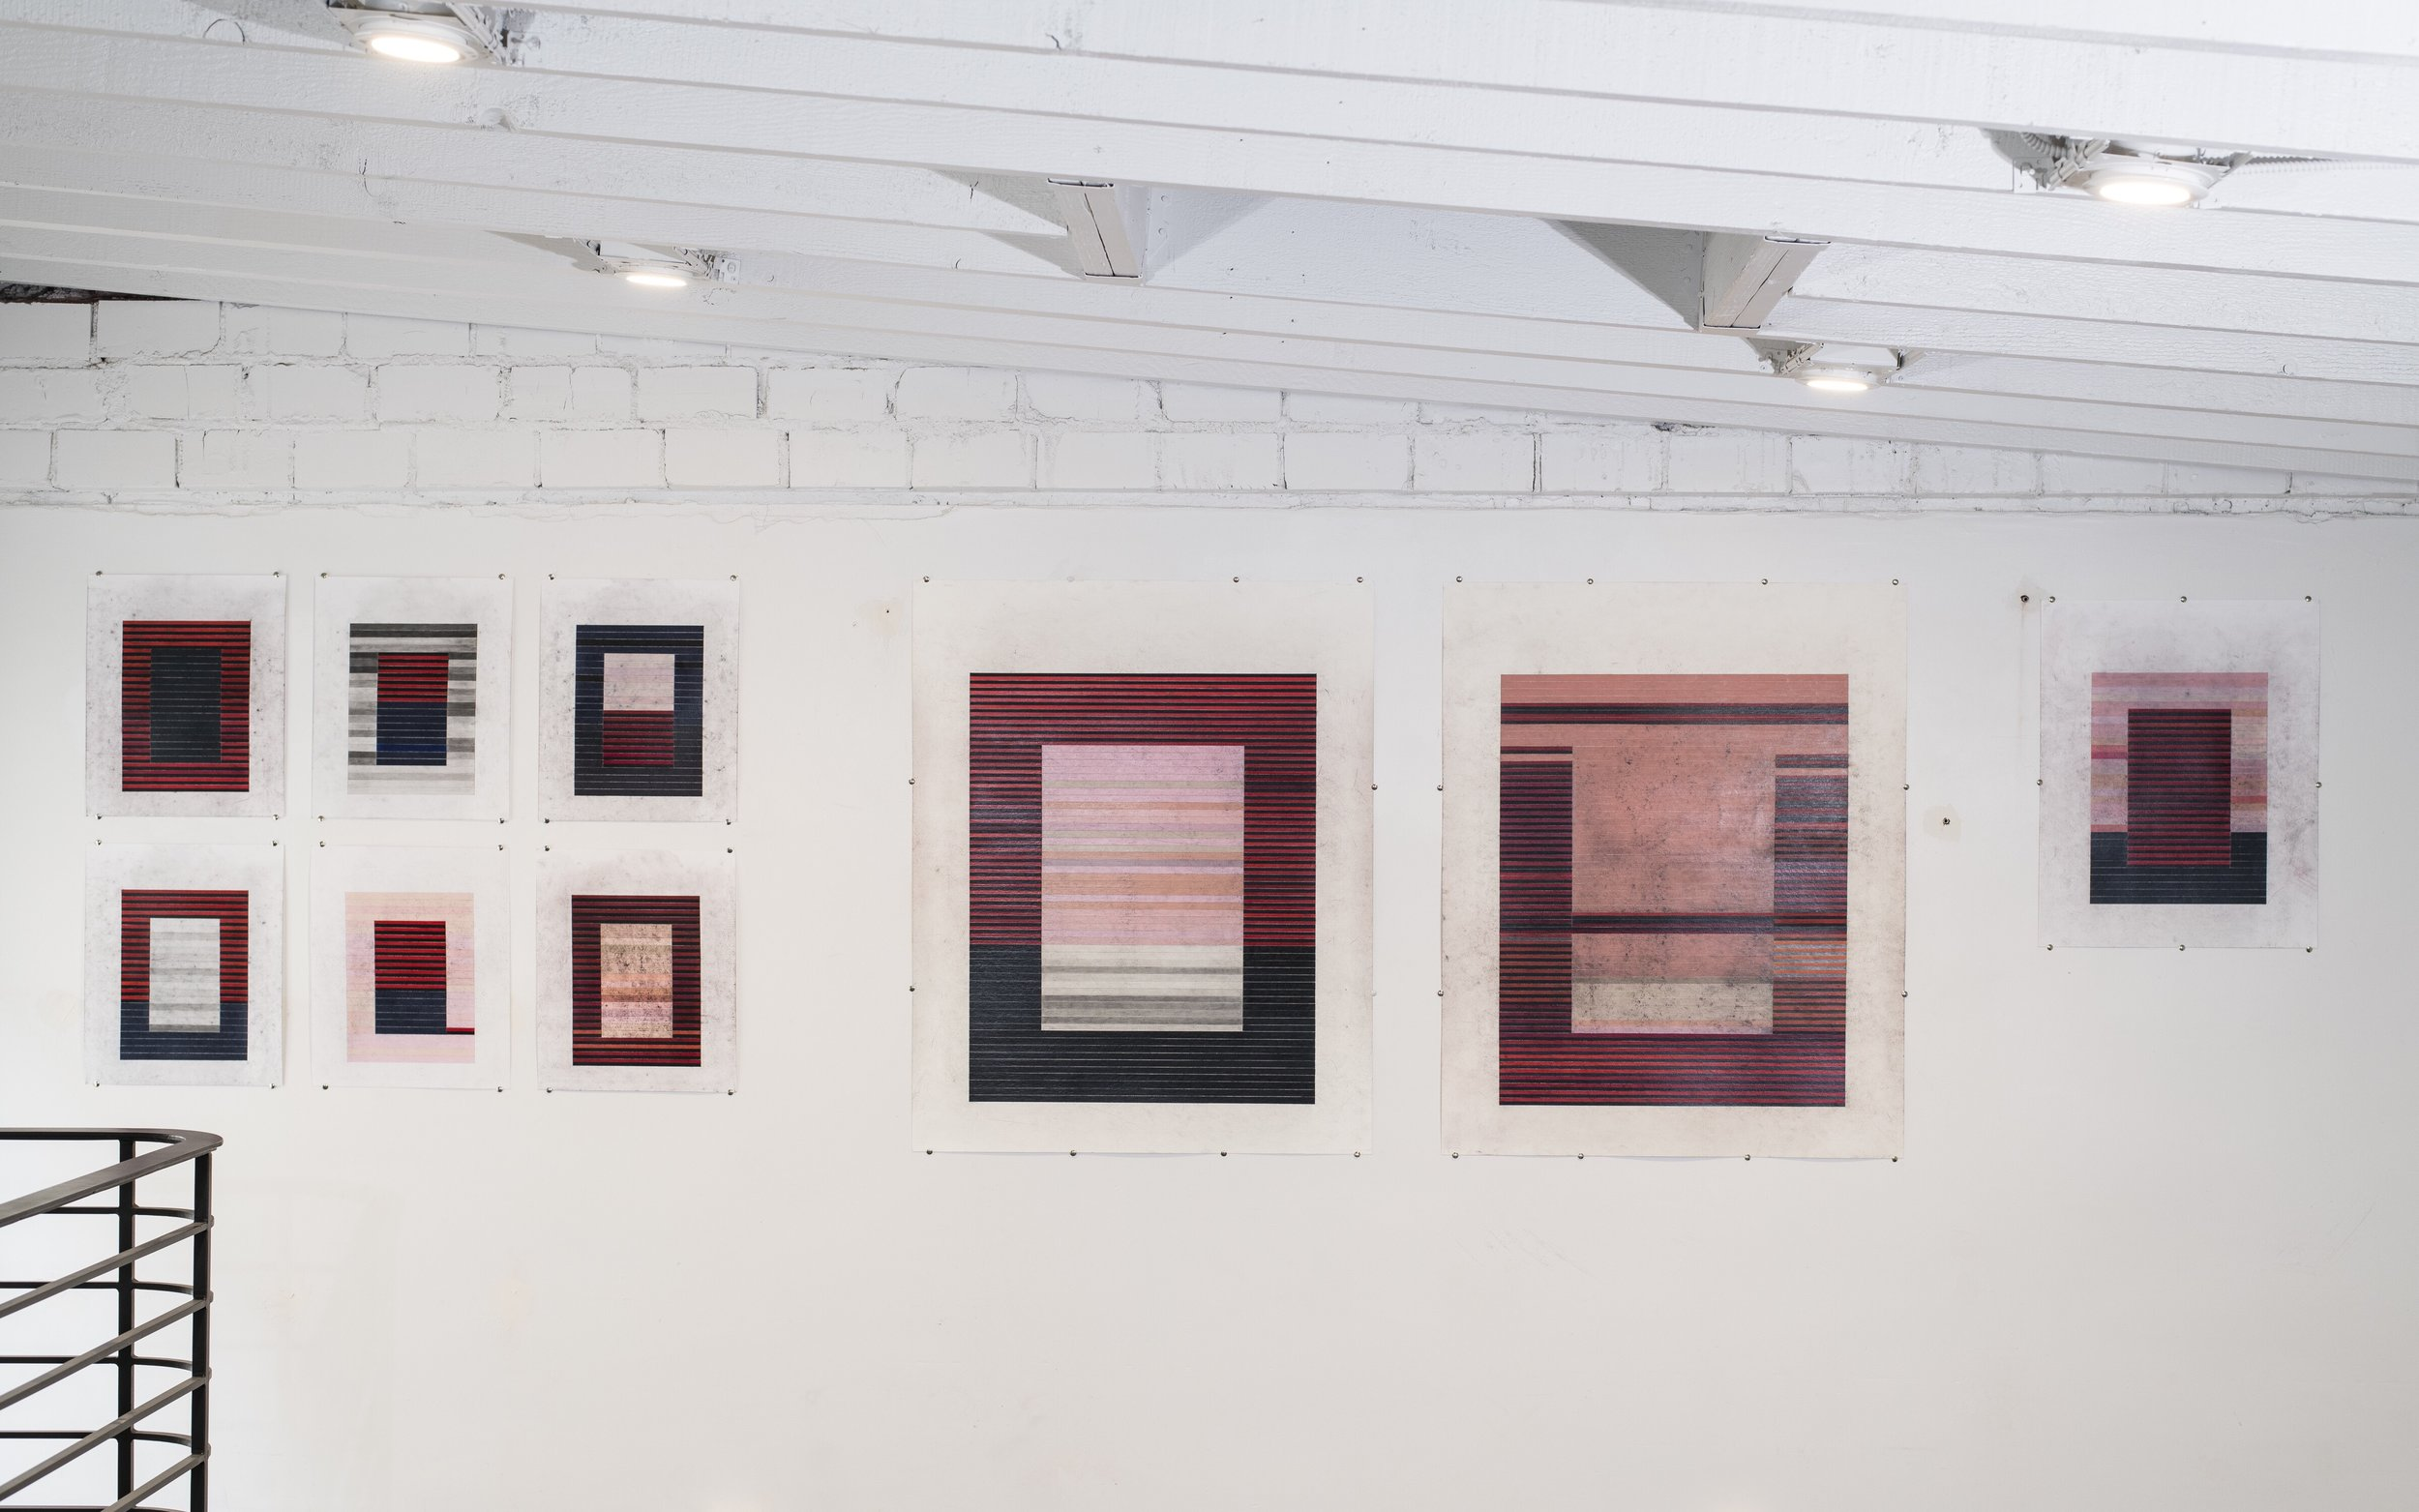 'Drawings of a Painting', installation view, 2019. Courtesy of there-there gallery.